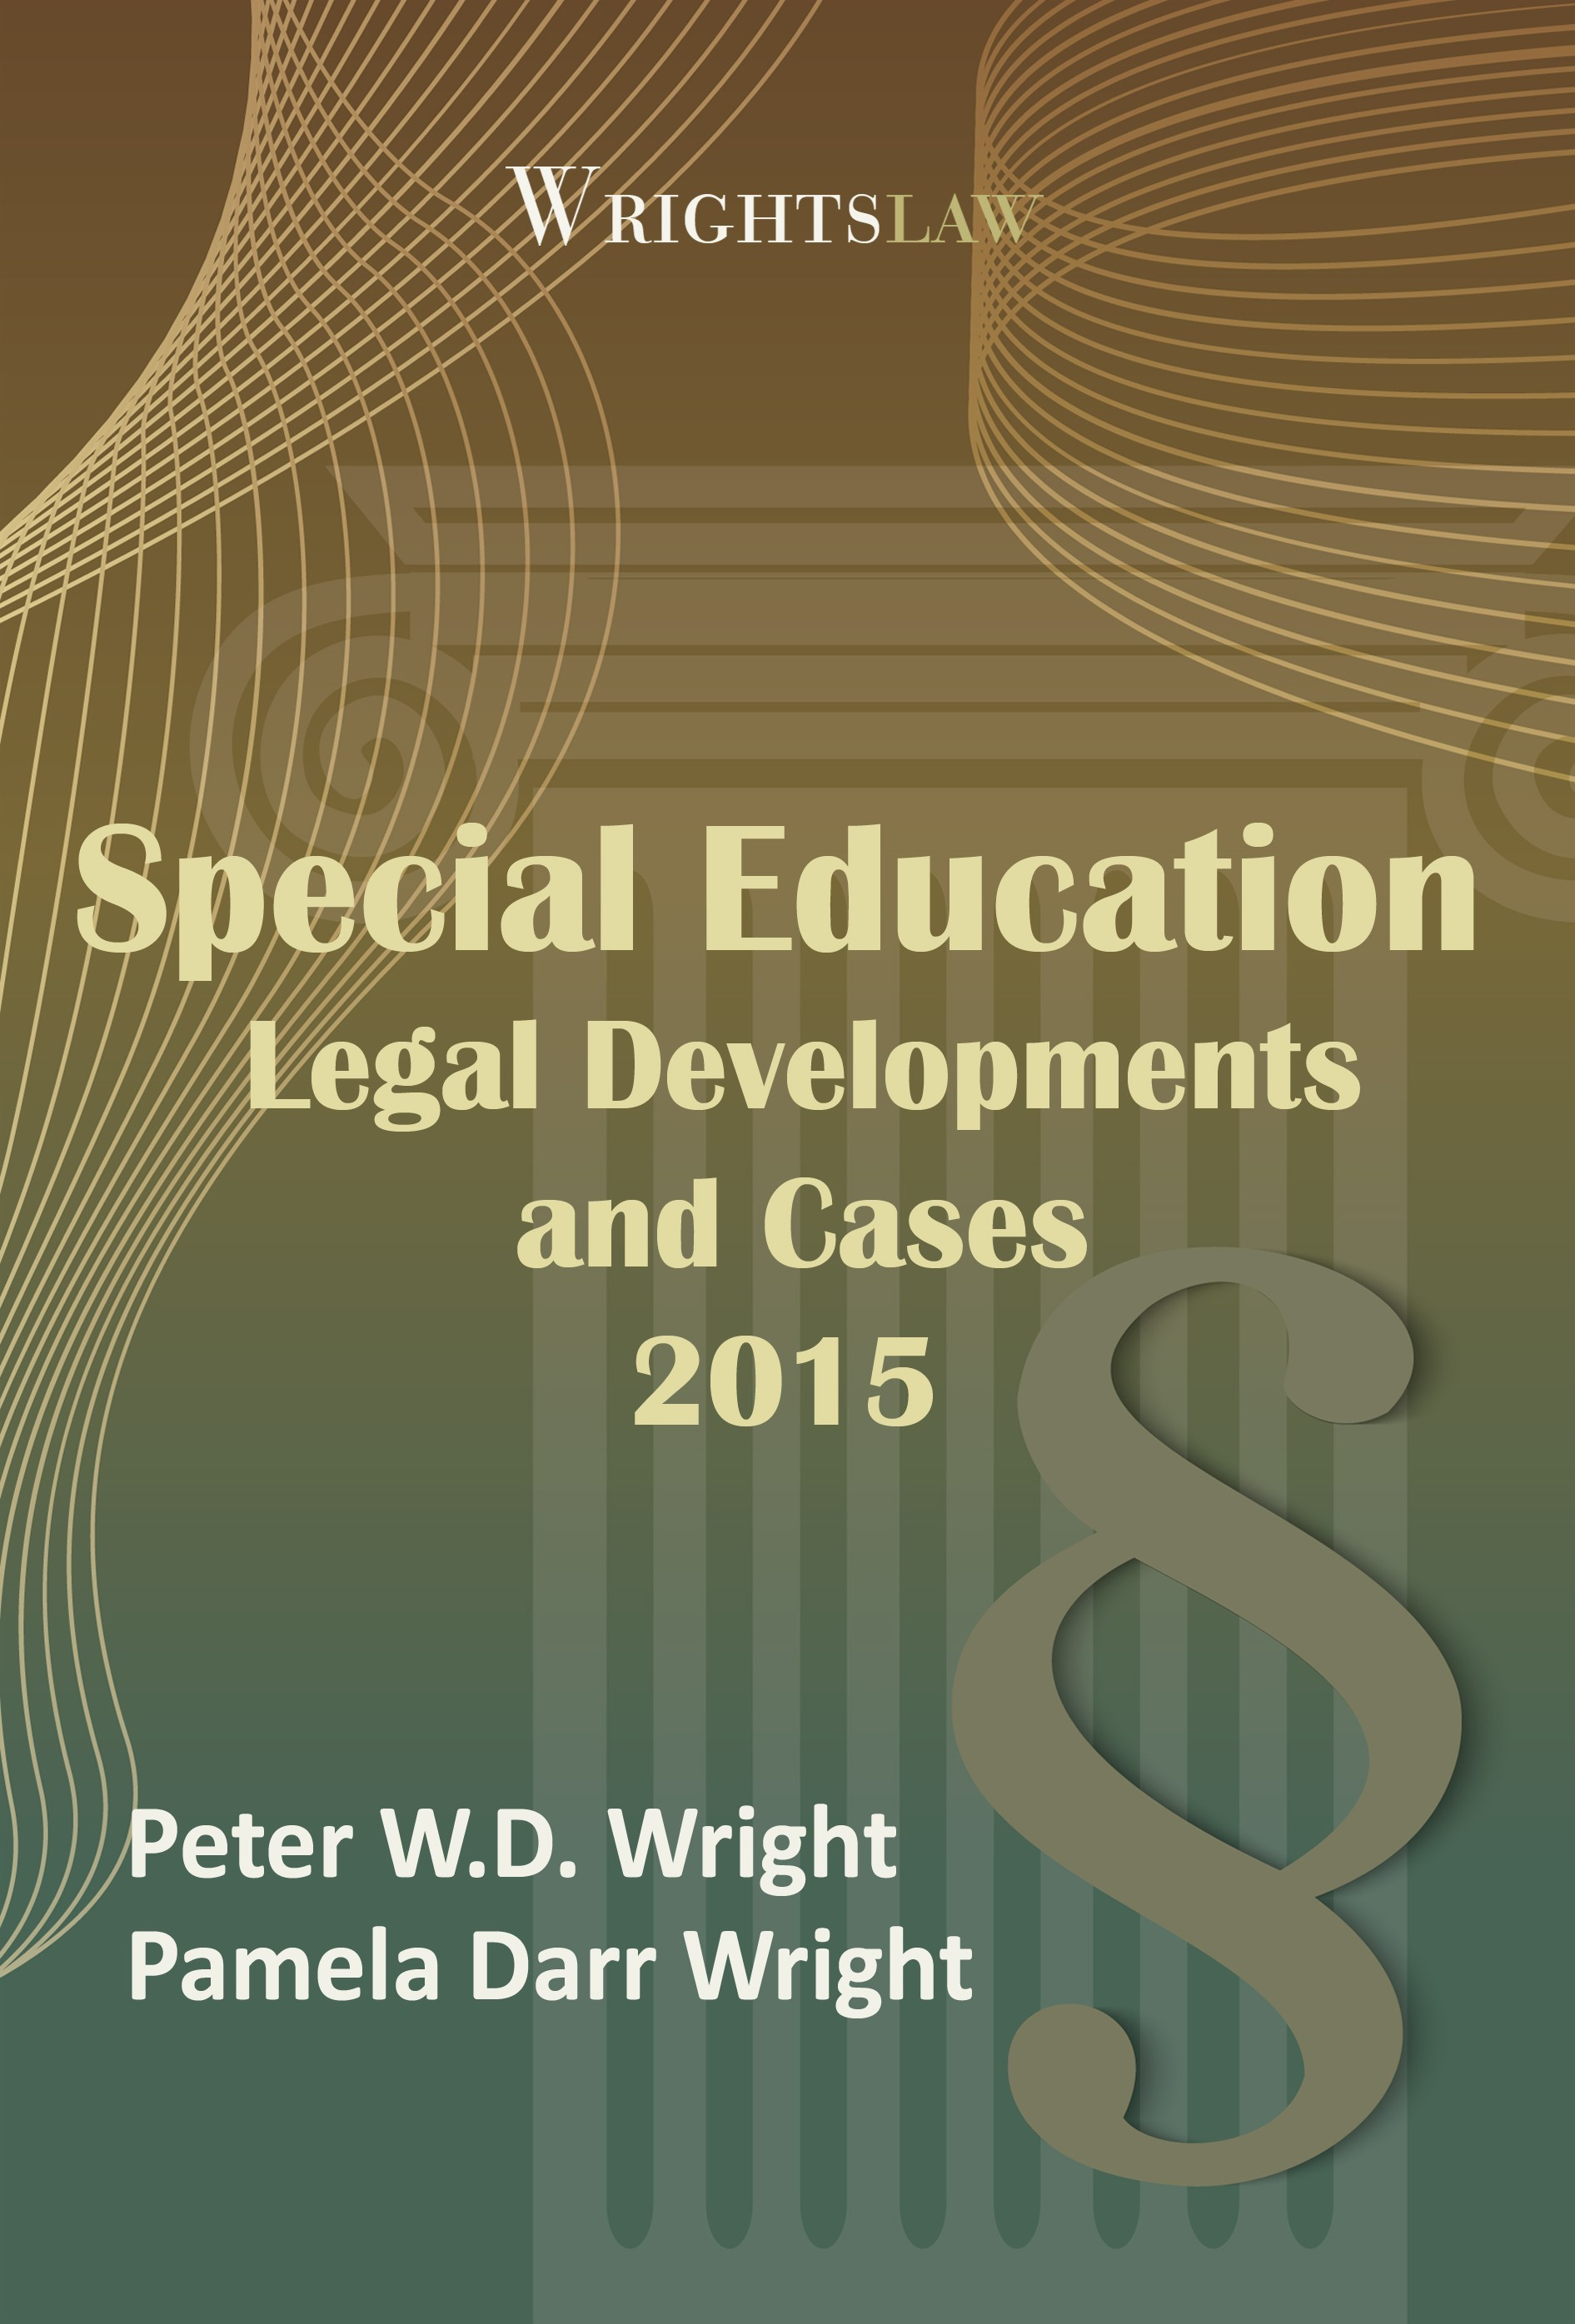 no child left behind wrightslaw special education law 2nd edition by pam and pete wright